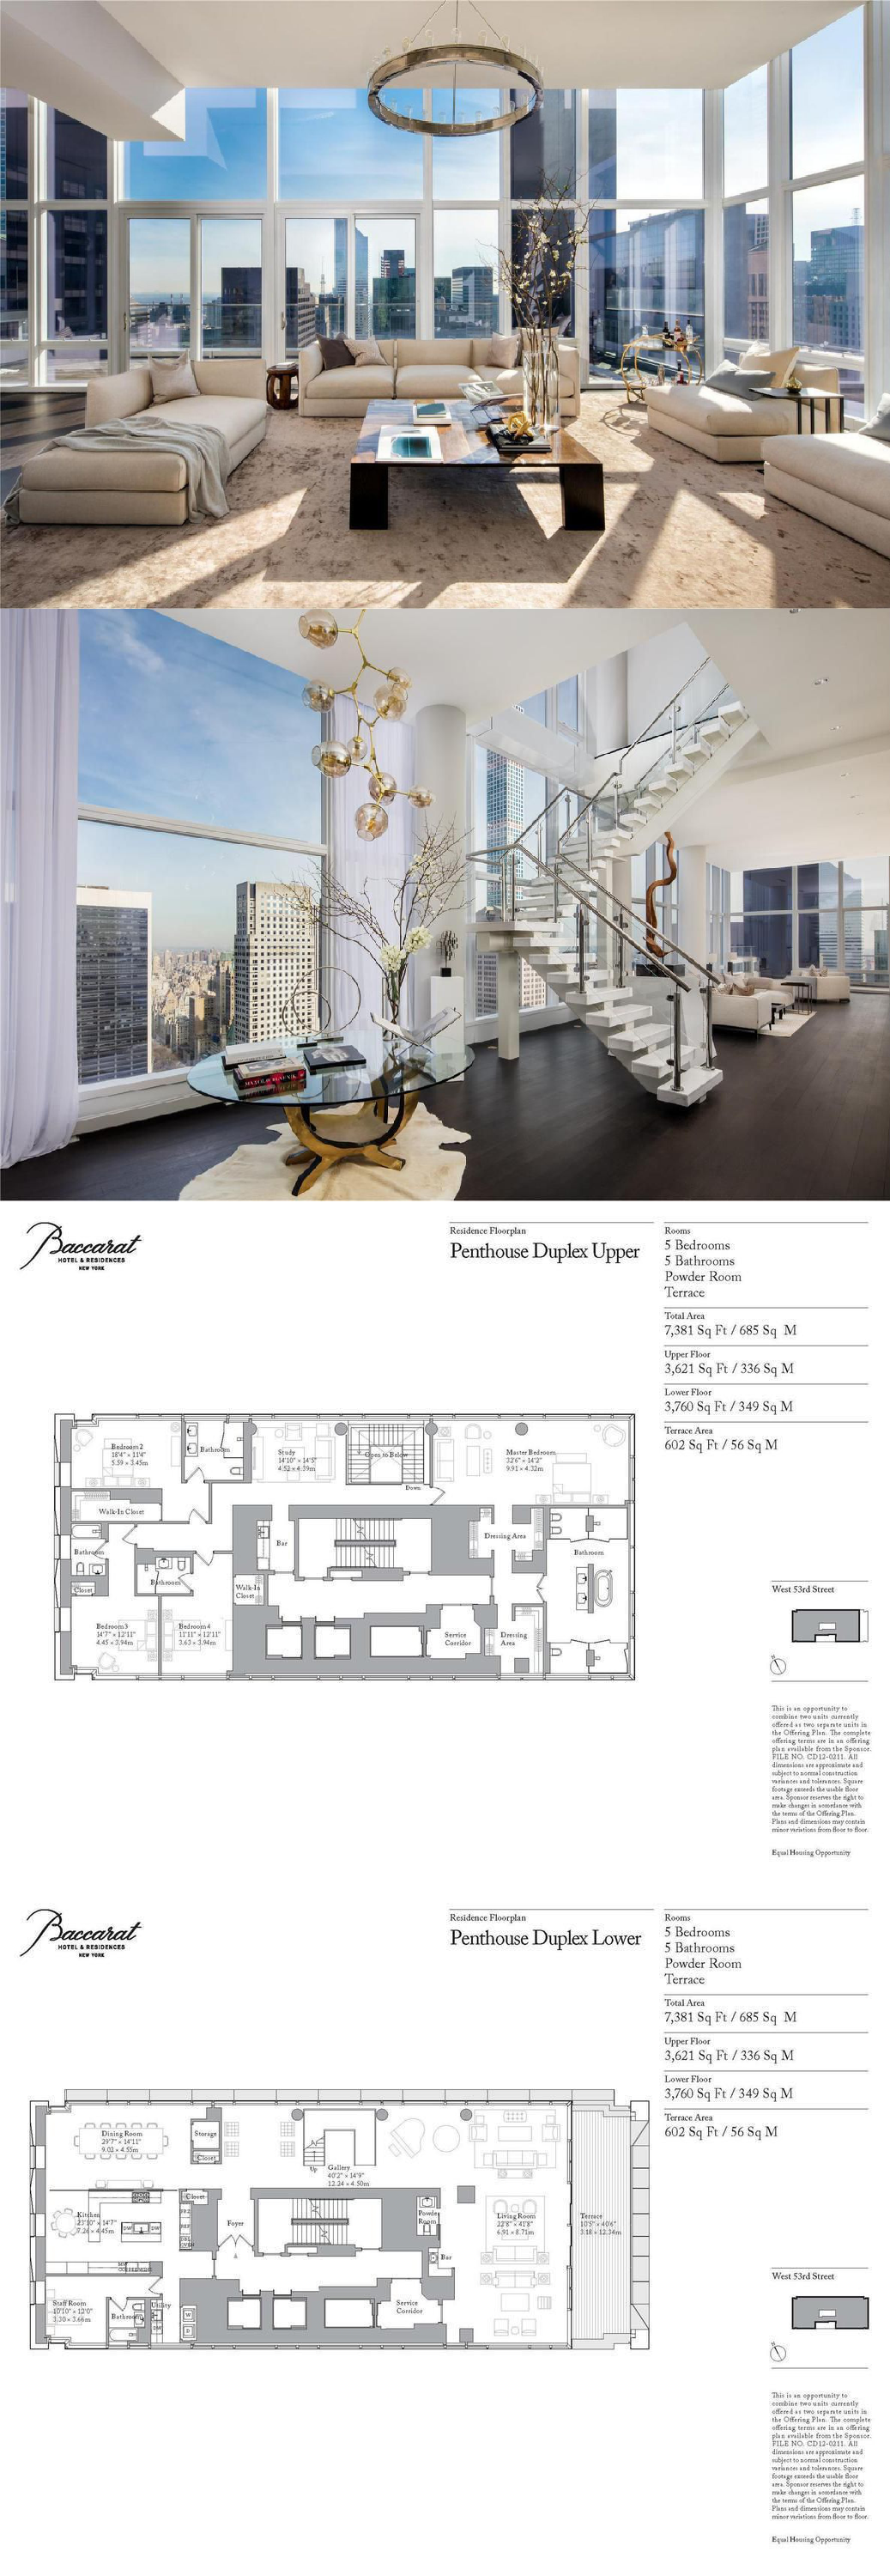 Baccarat penthouse returns for $3M less than two years after